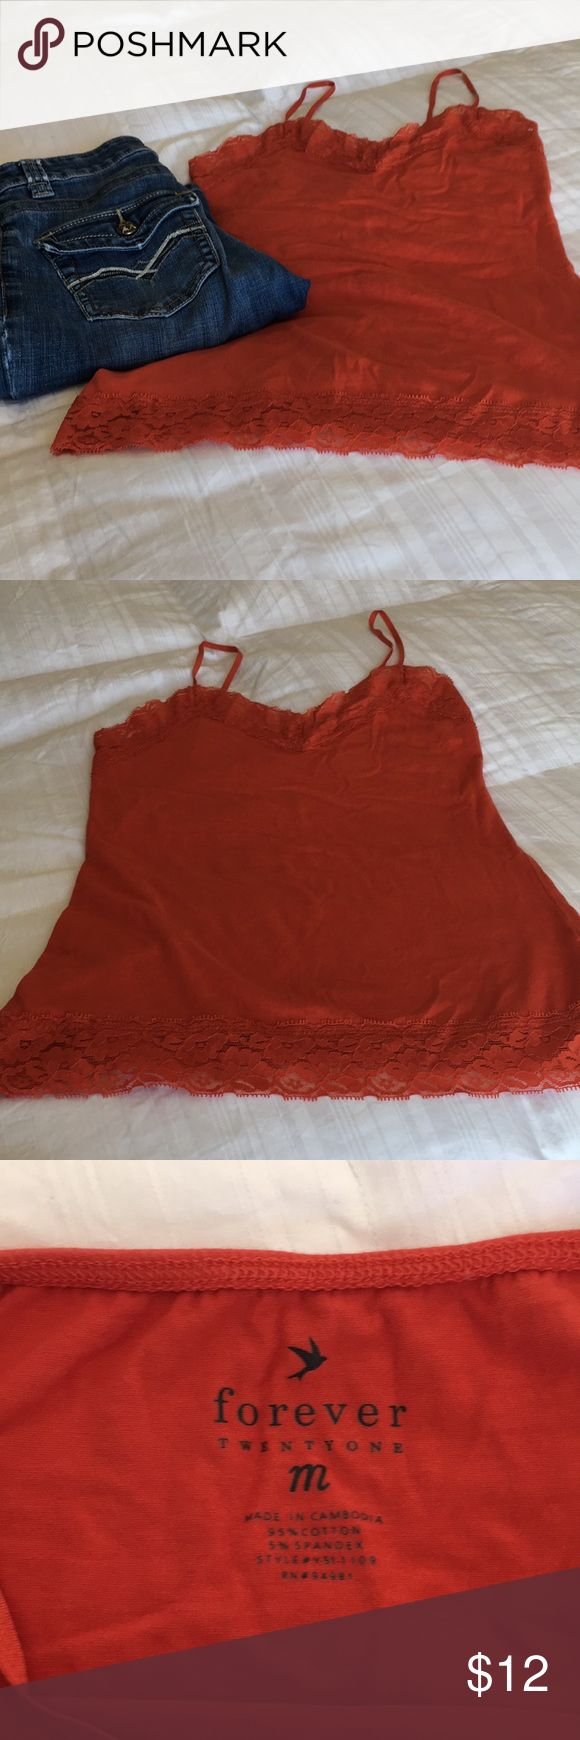 Forever 21 lace cami Cute orange lace cami Adjustable straps Forever 21 Tops Camisoles